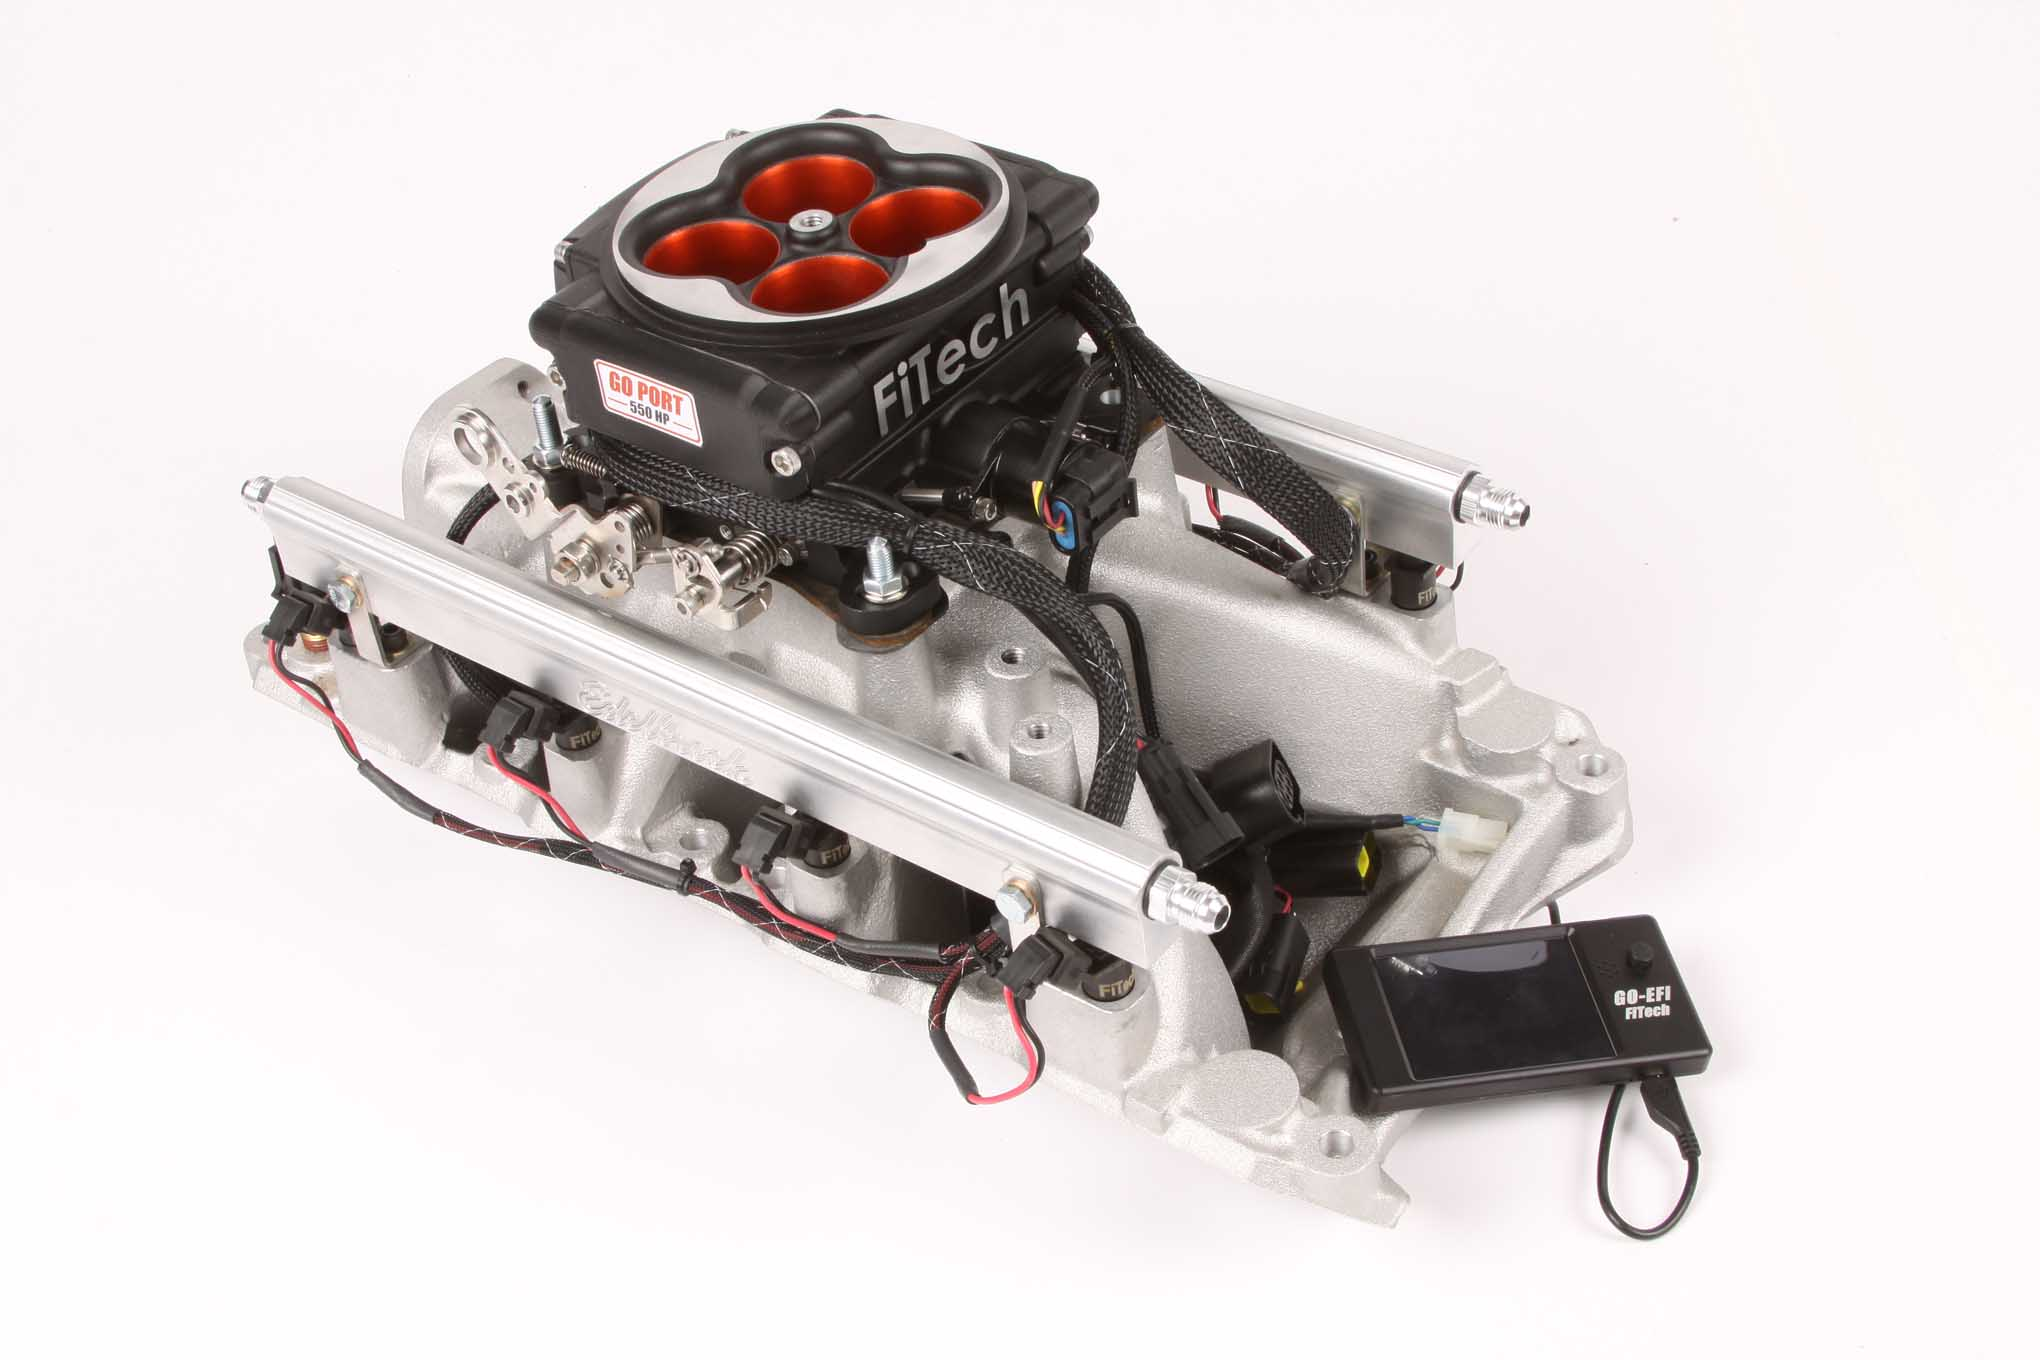 41 Hot New Mopar Products From SEMA! - Hot Rod Network